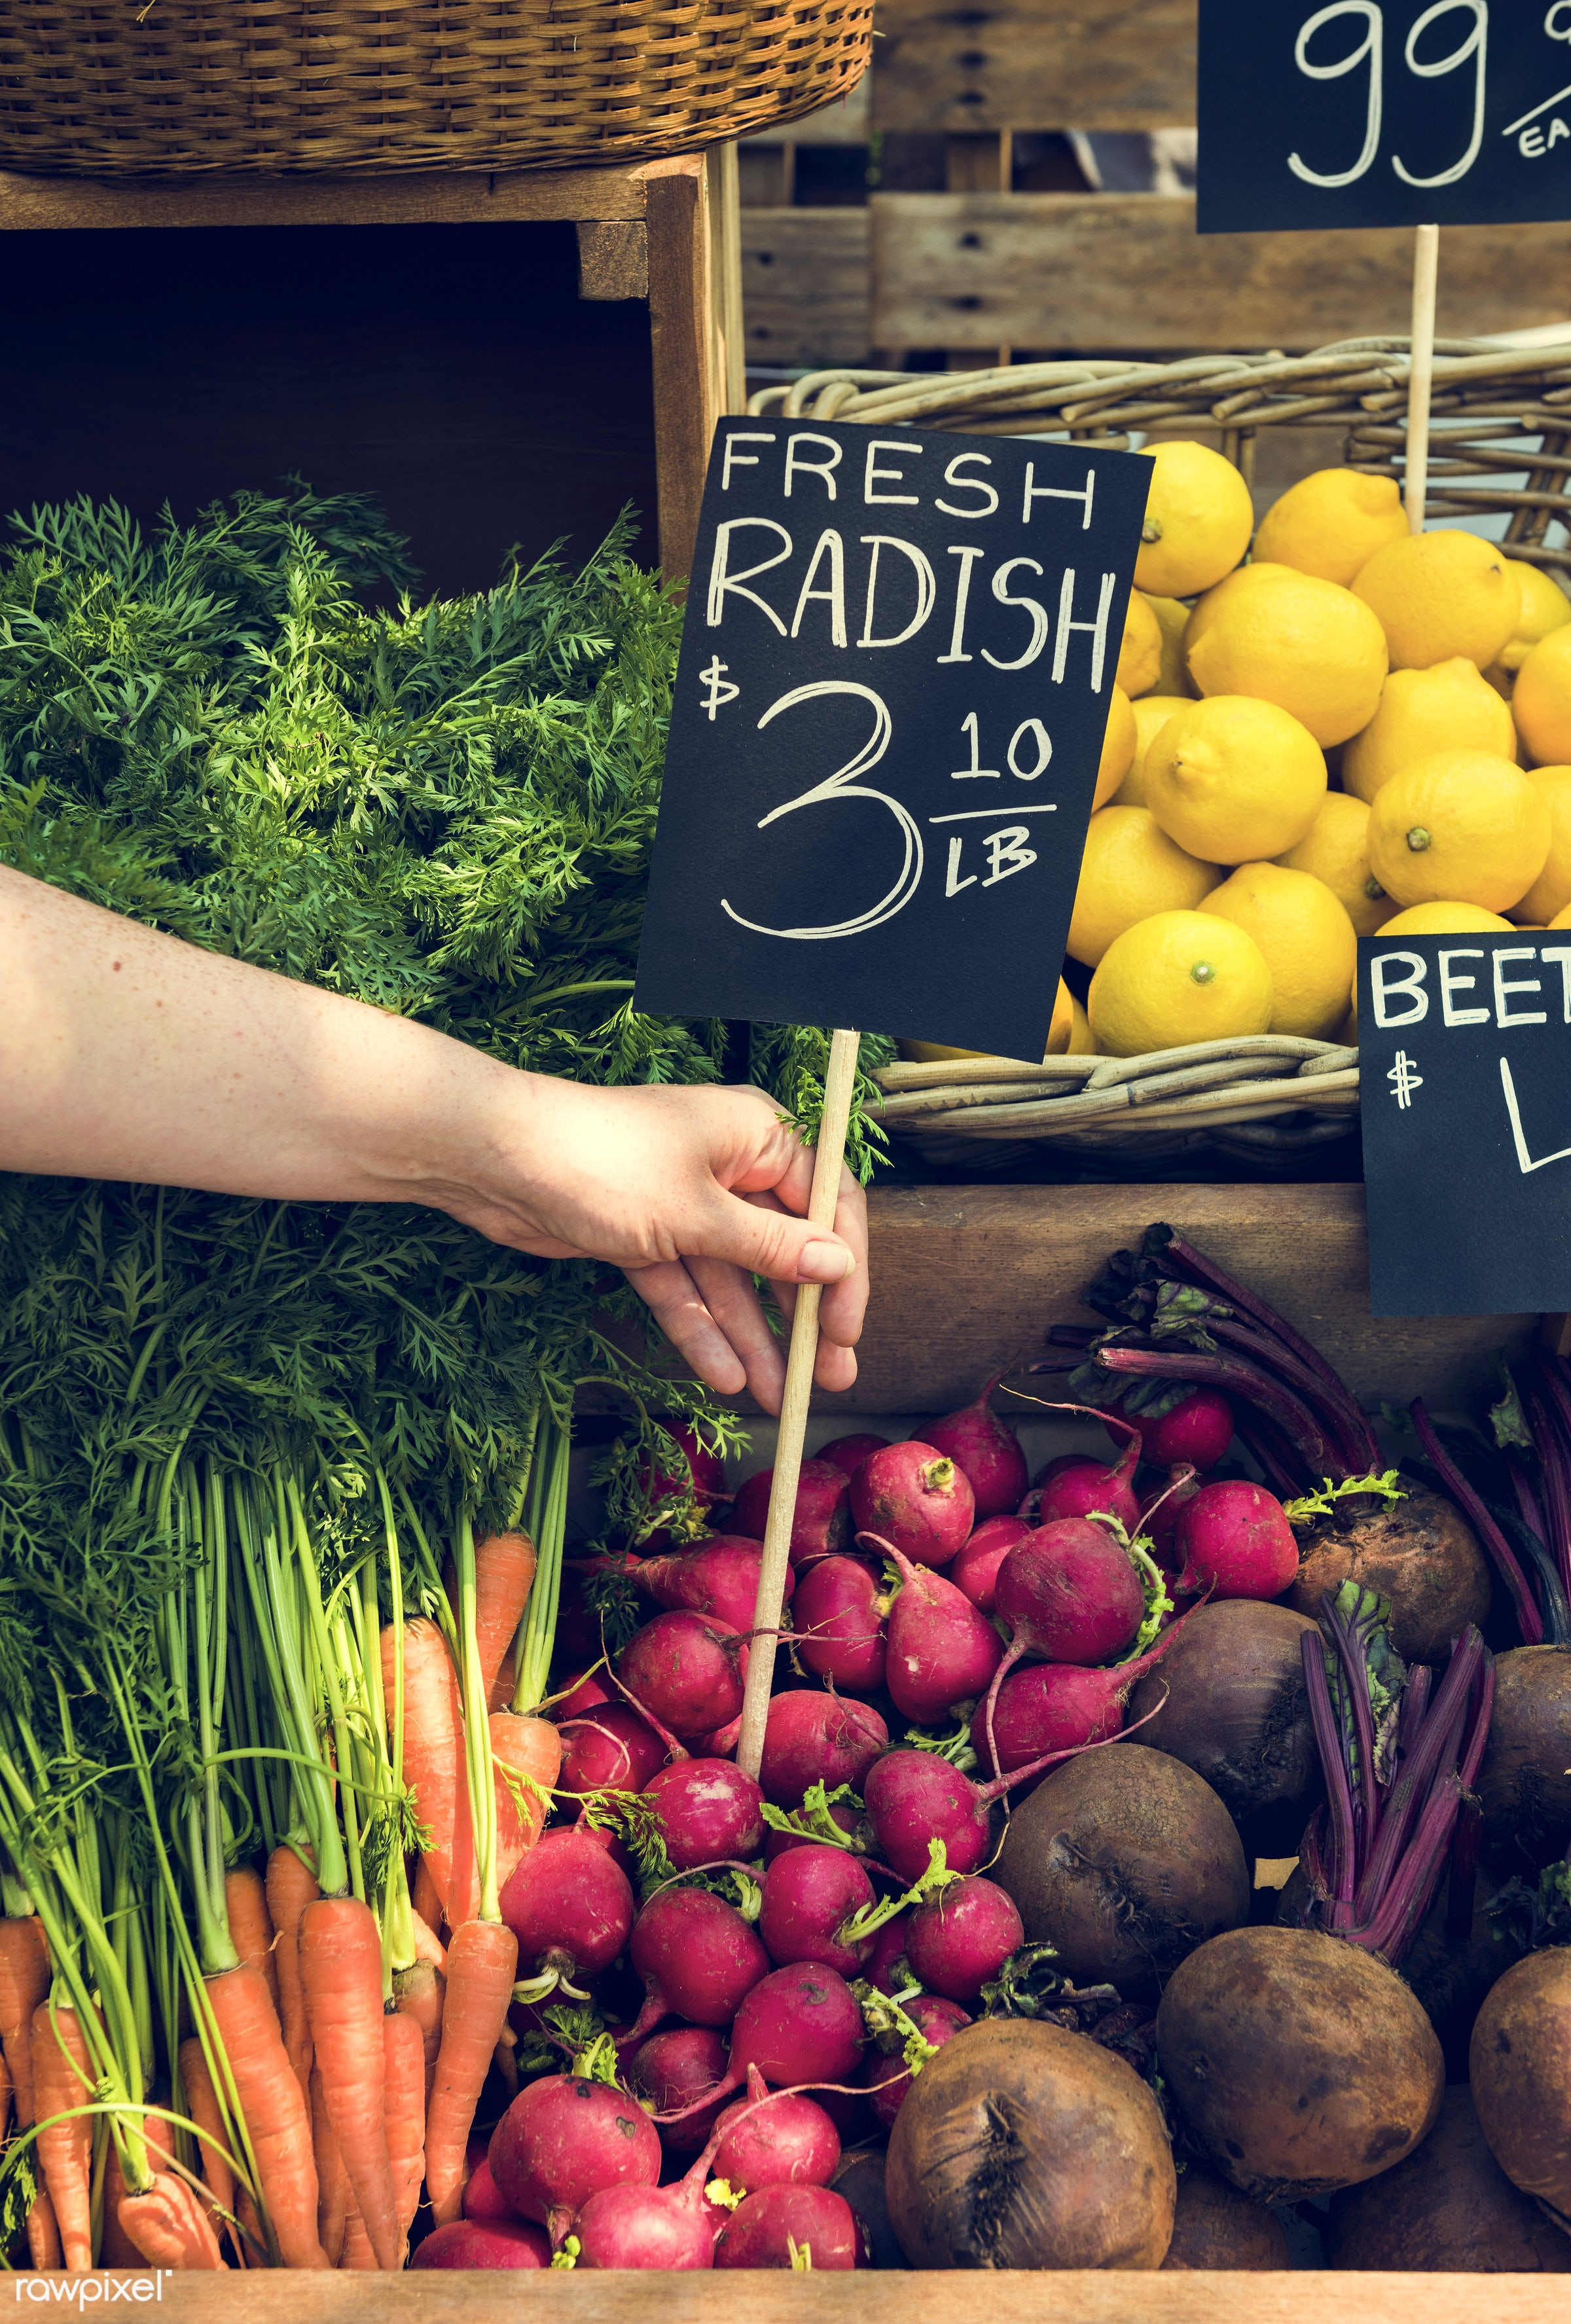 grocery, shop, carrot, nutritious, store, holding, hand, farmer, fresh, healthy eating, marketplace, banner, fruit,...